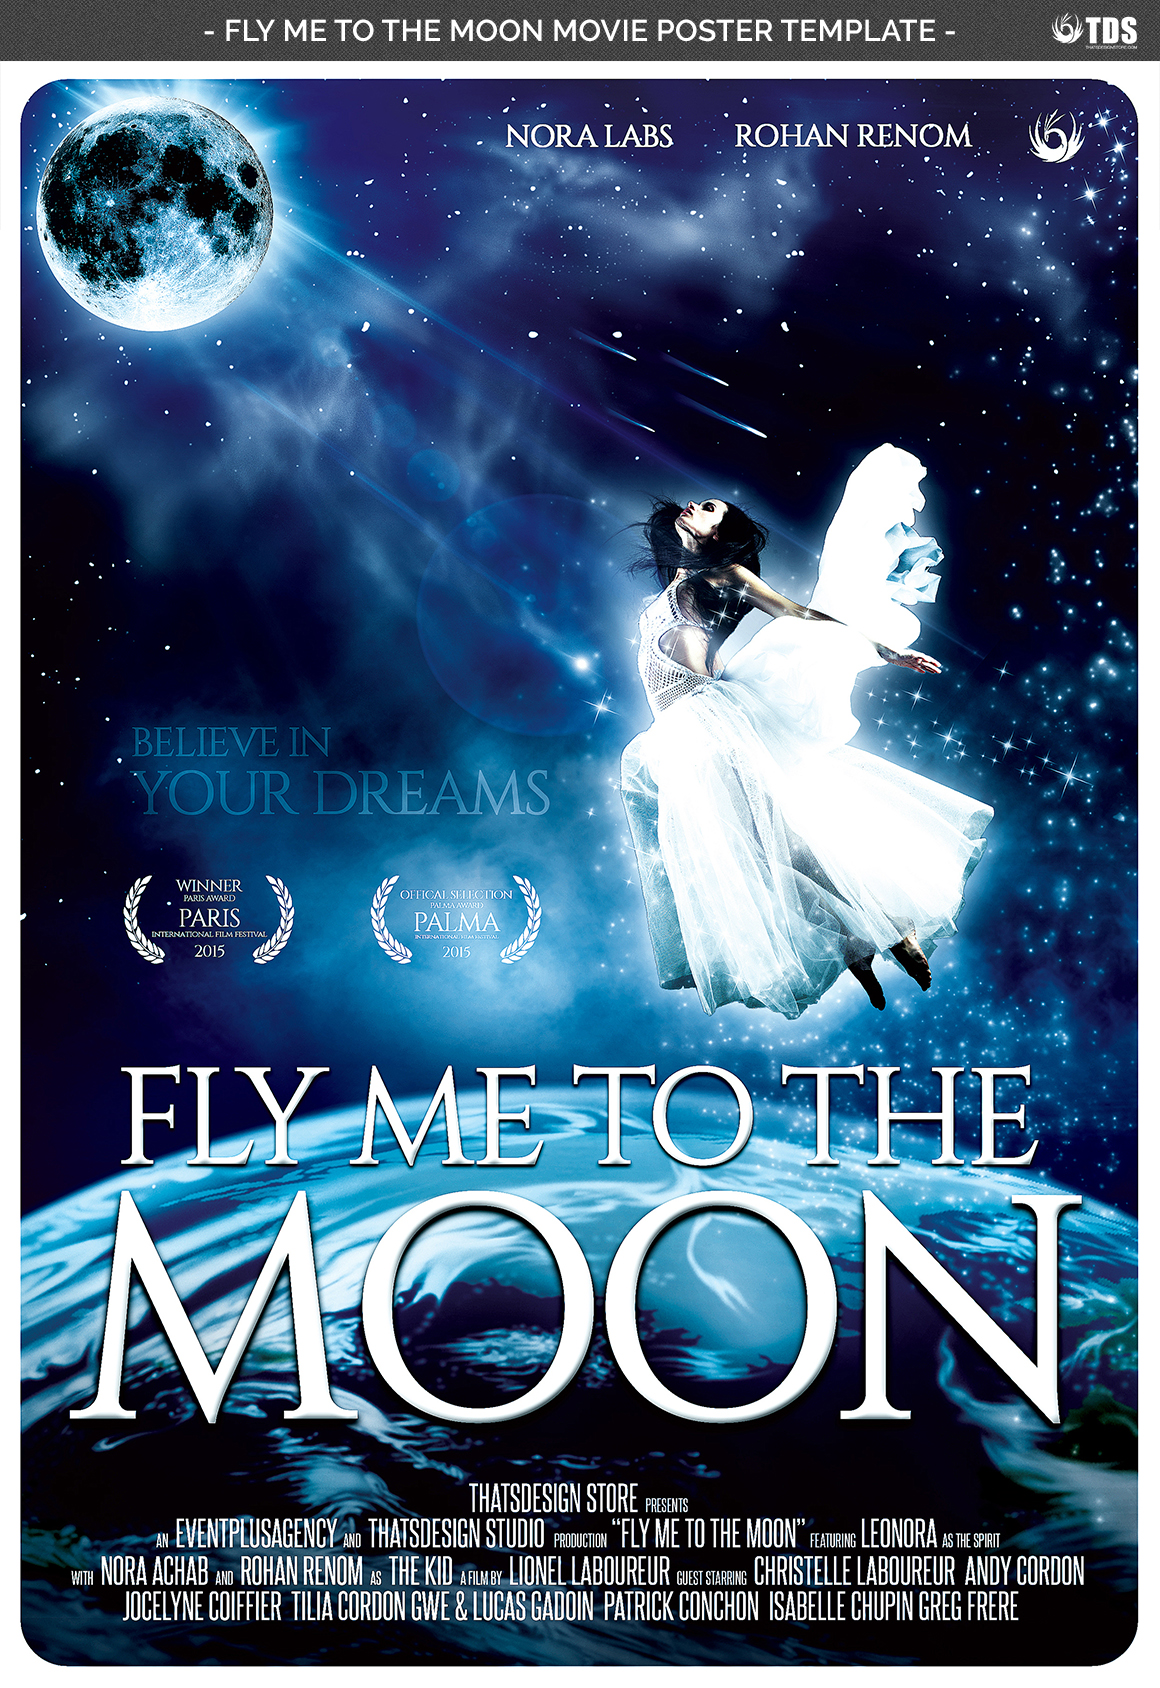 Fly Me to the Moon Movie Poster Template example image 4